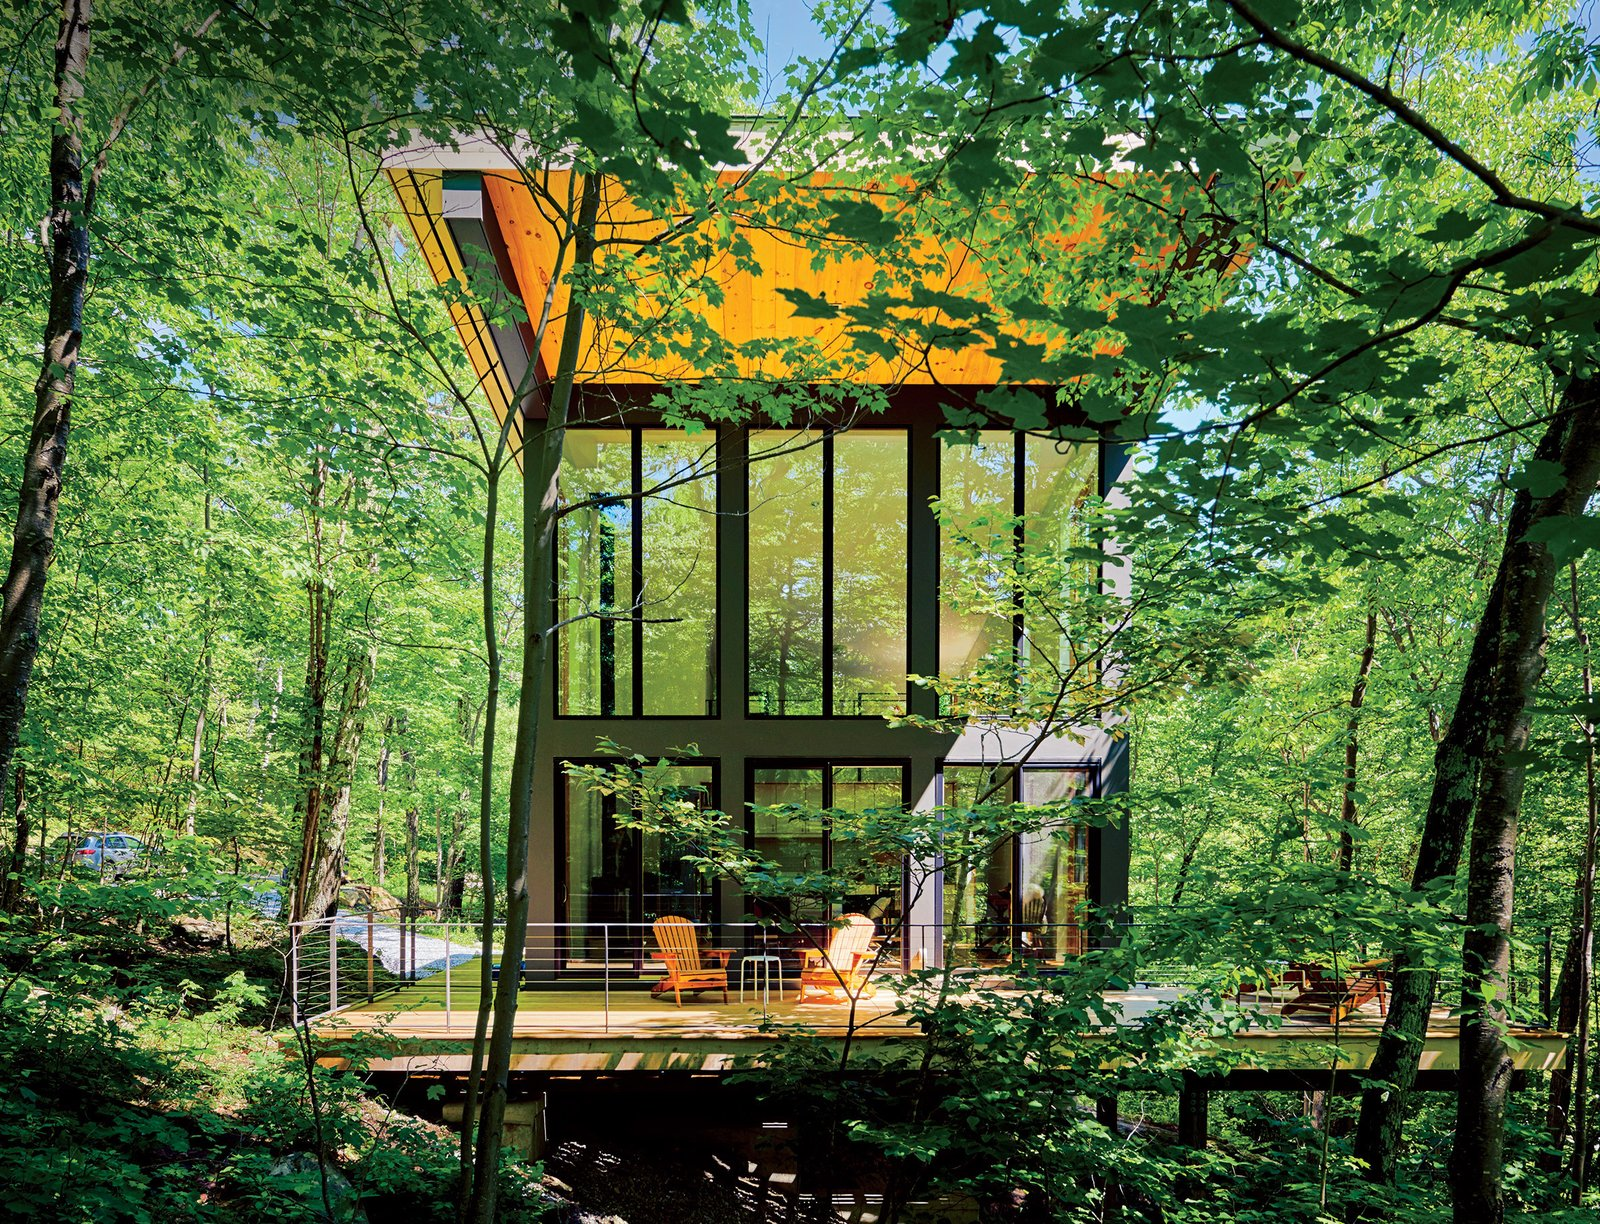 """A cantilevered cabin designed by R D Gentzler blends into the forest, even as it hovers above a 20-foot drop-off. Its south face is almost entirely glass, but a roof canopy limits solar gain. """"We sit on the deck all afternoon watching the trees, and the time just flies by,"""" says resident Maricela Salas. Tagged: Exterior, Cabin Building Type, House, and Metal Siding Material.  Photo 36 of 101 in 101 Best Modern Cabins from A Little Cabin Cantilevered Over a Rocky Ledge in the Mountains"""